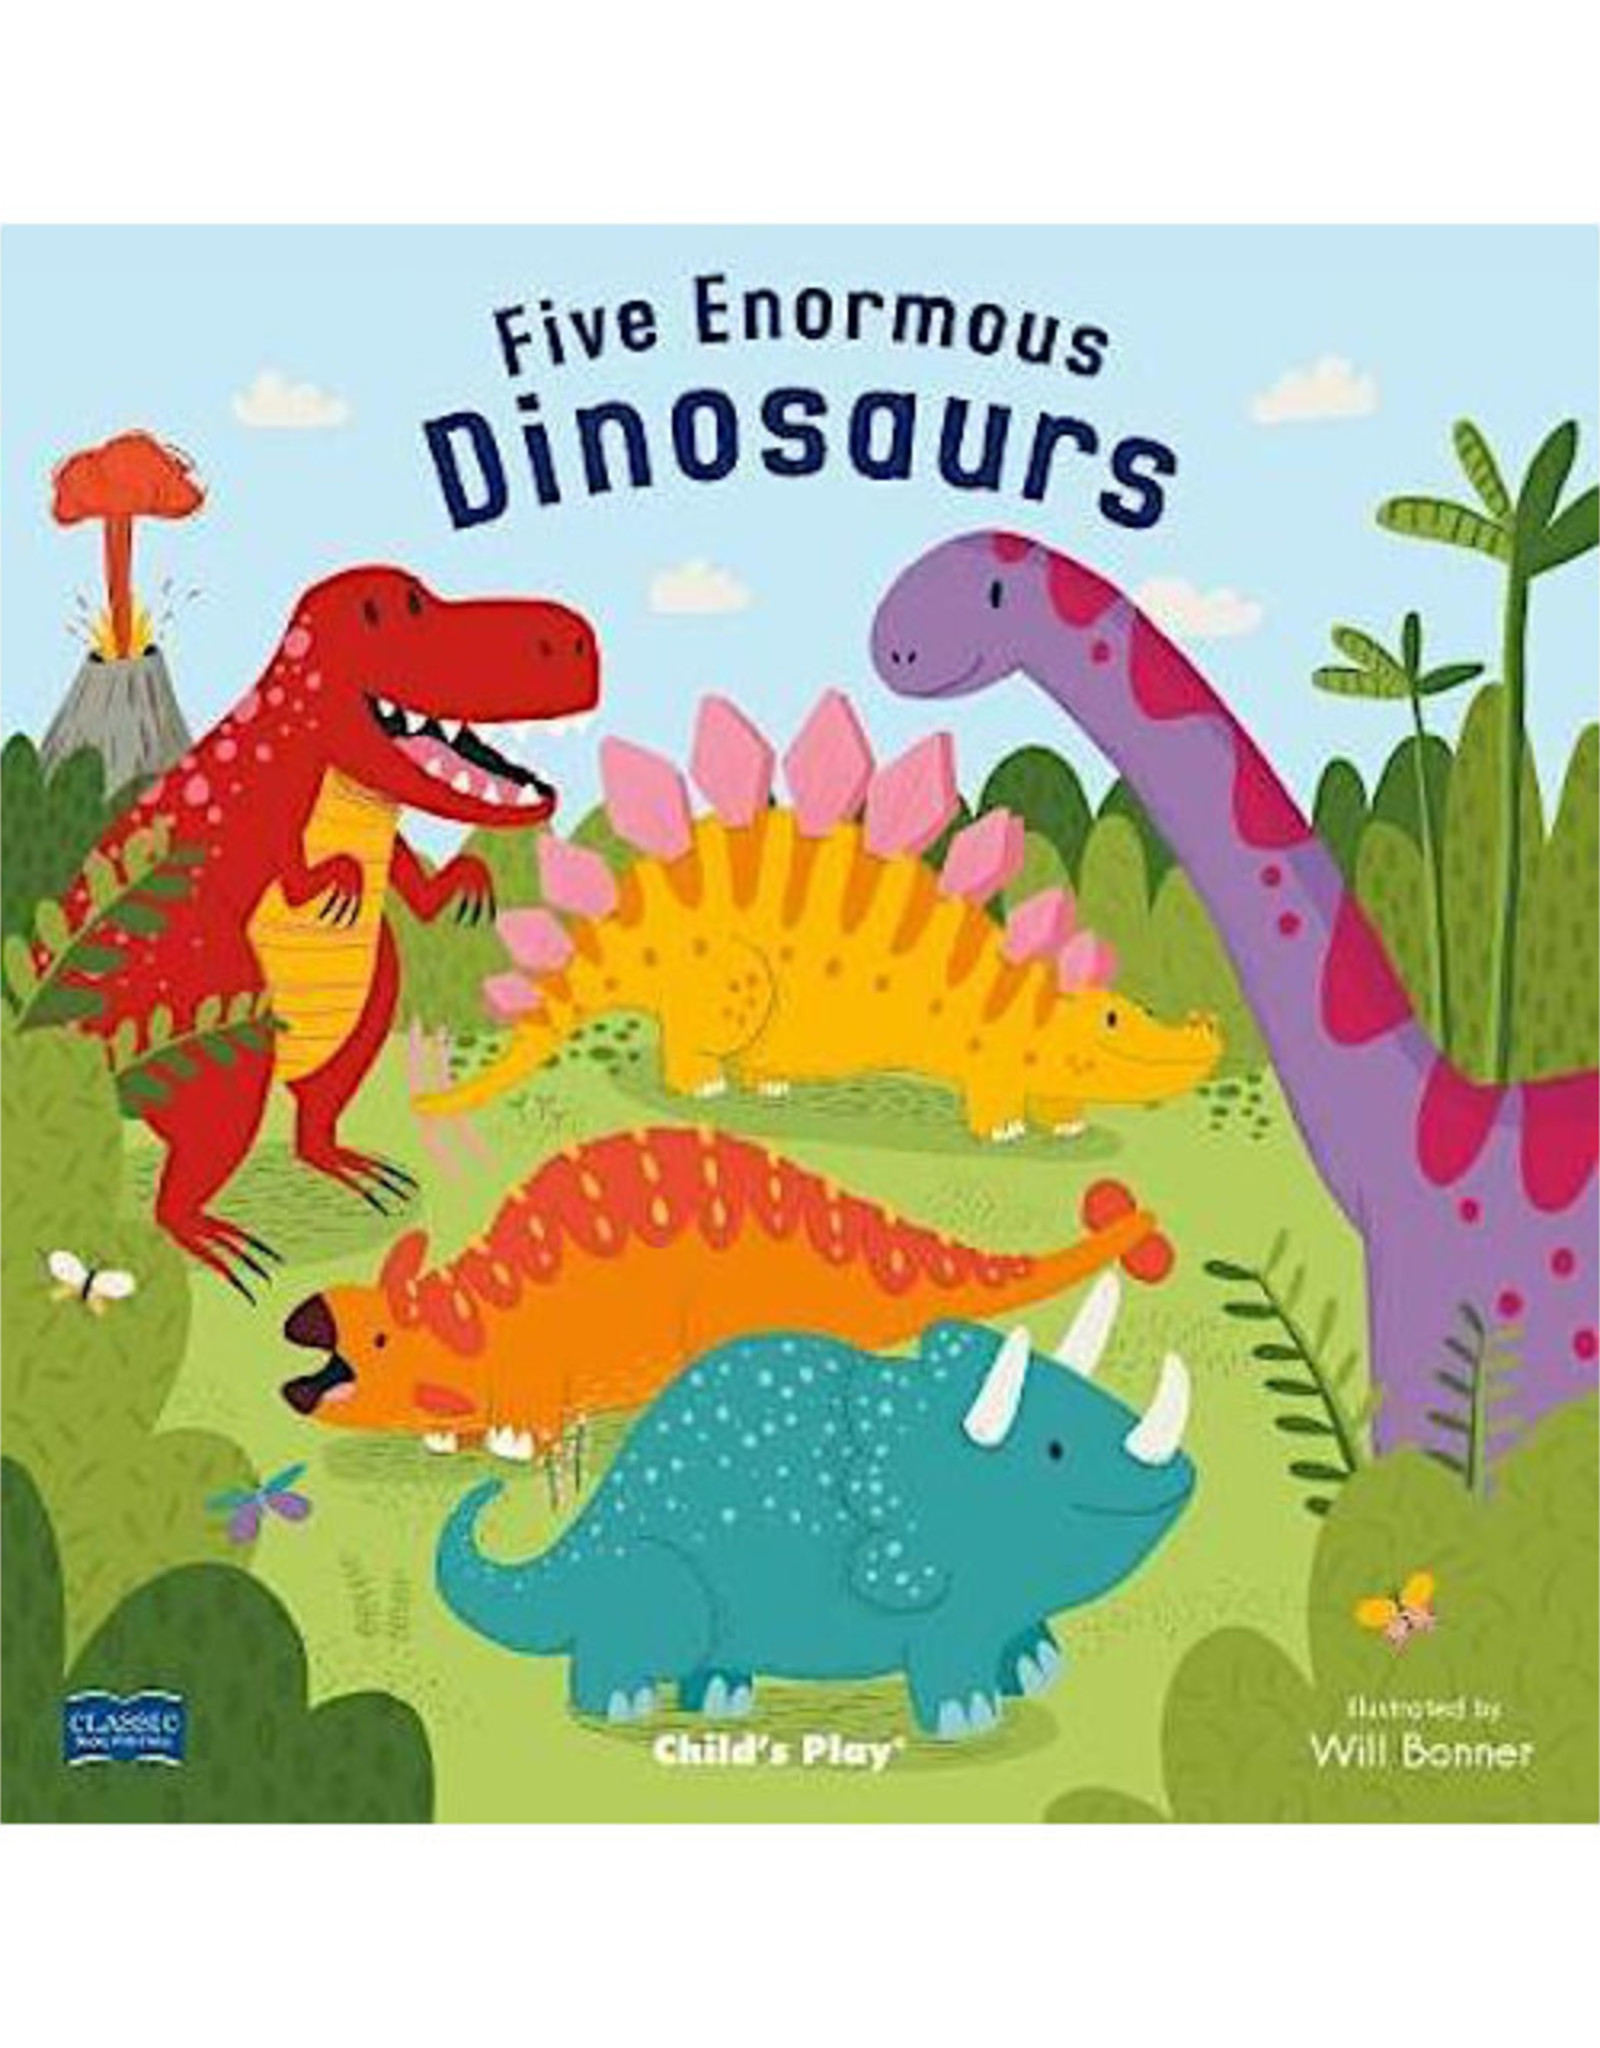 child's play Five Enormous Dinosaurs